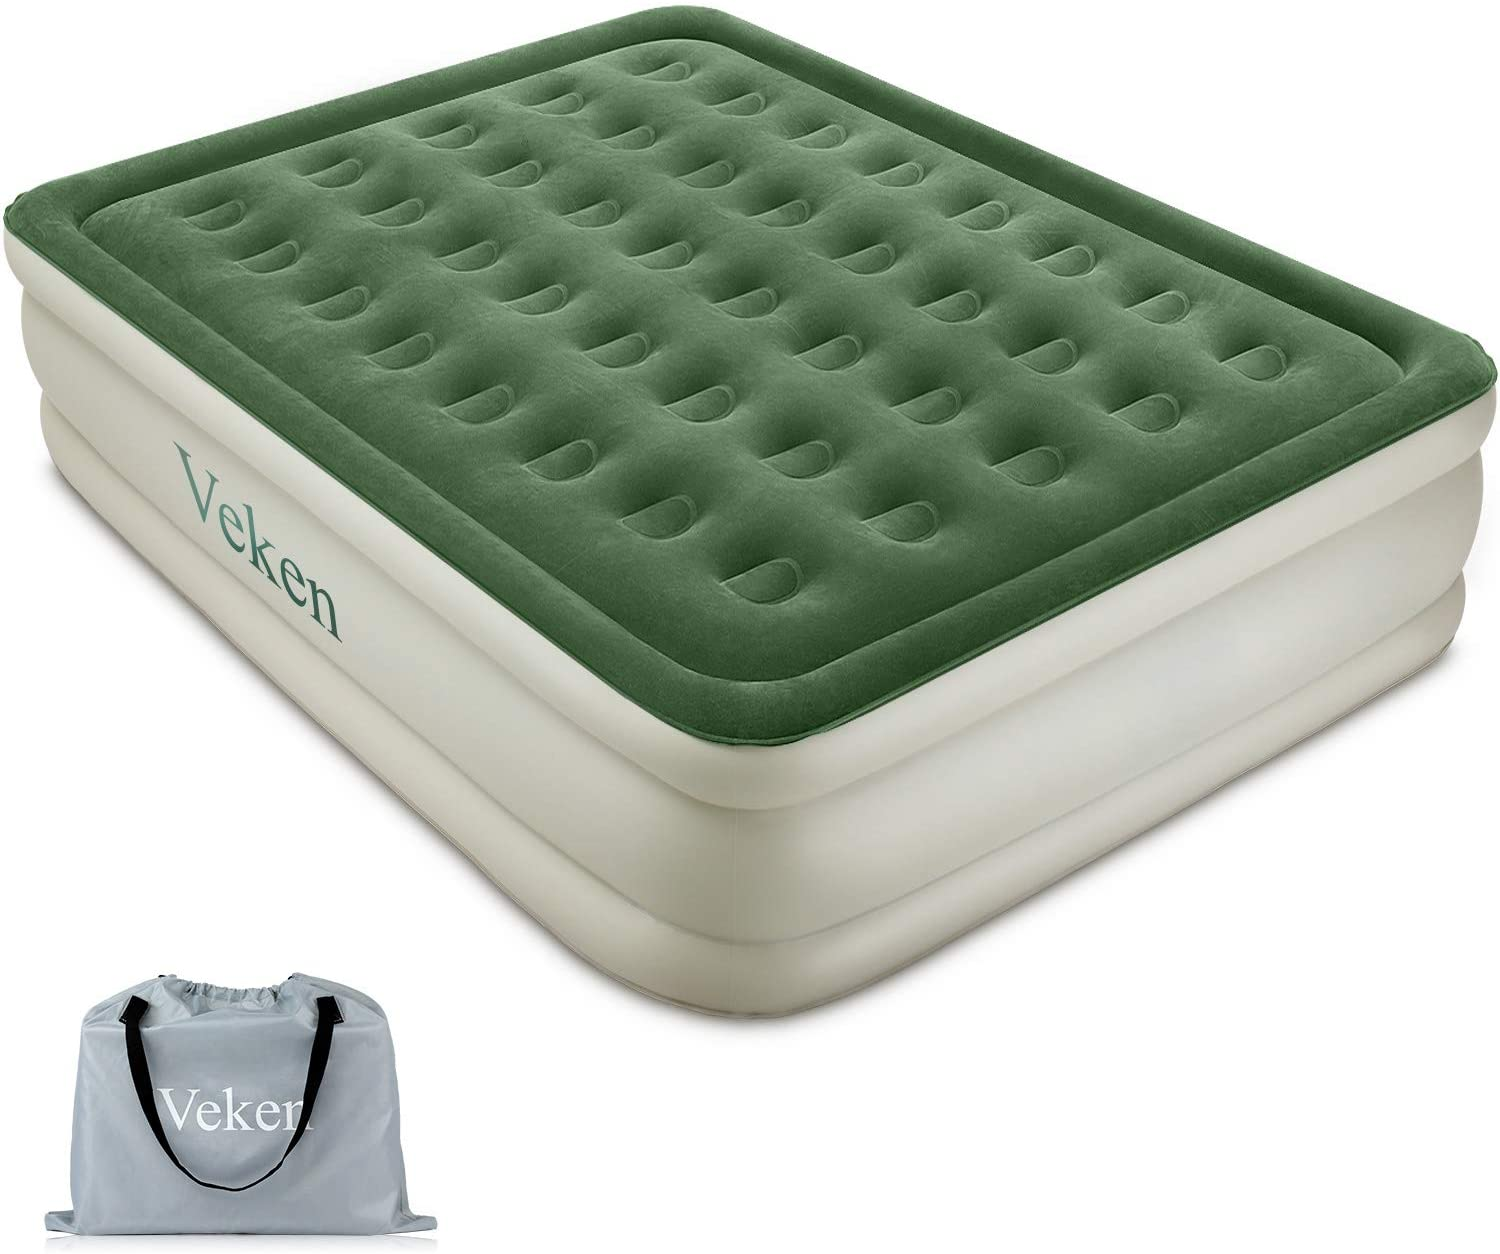 Veken Queen Air Mattress with Built-in Pump, Inflatable 18